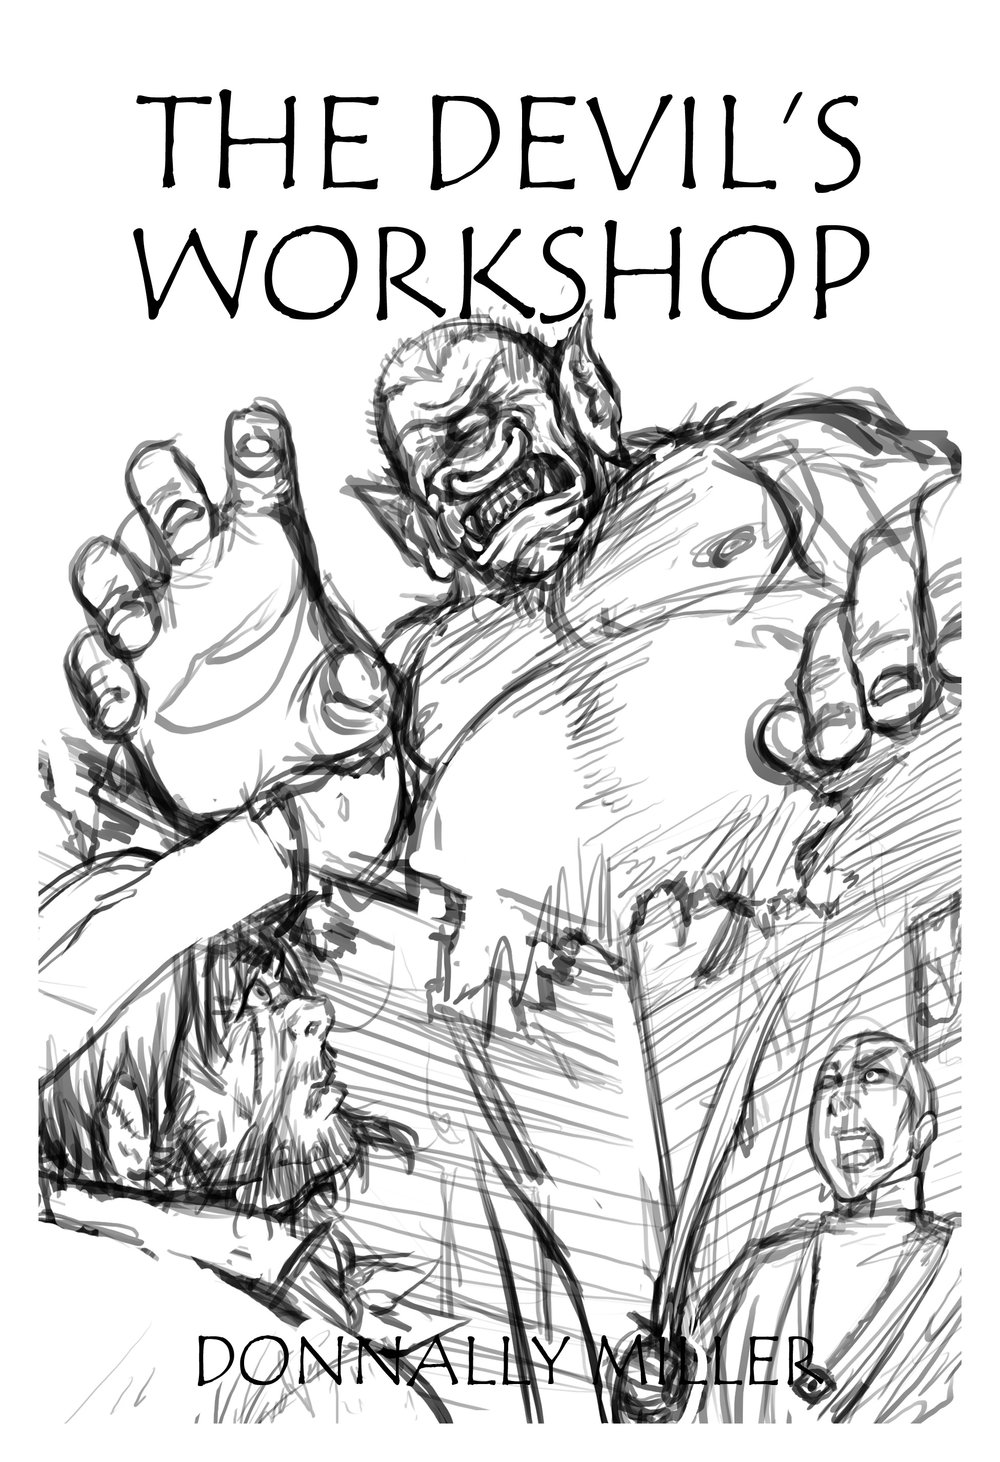 The Devil's Workshop cover_Final Draft.jpg